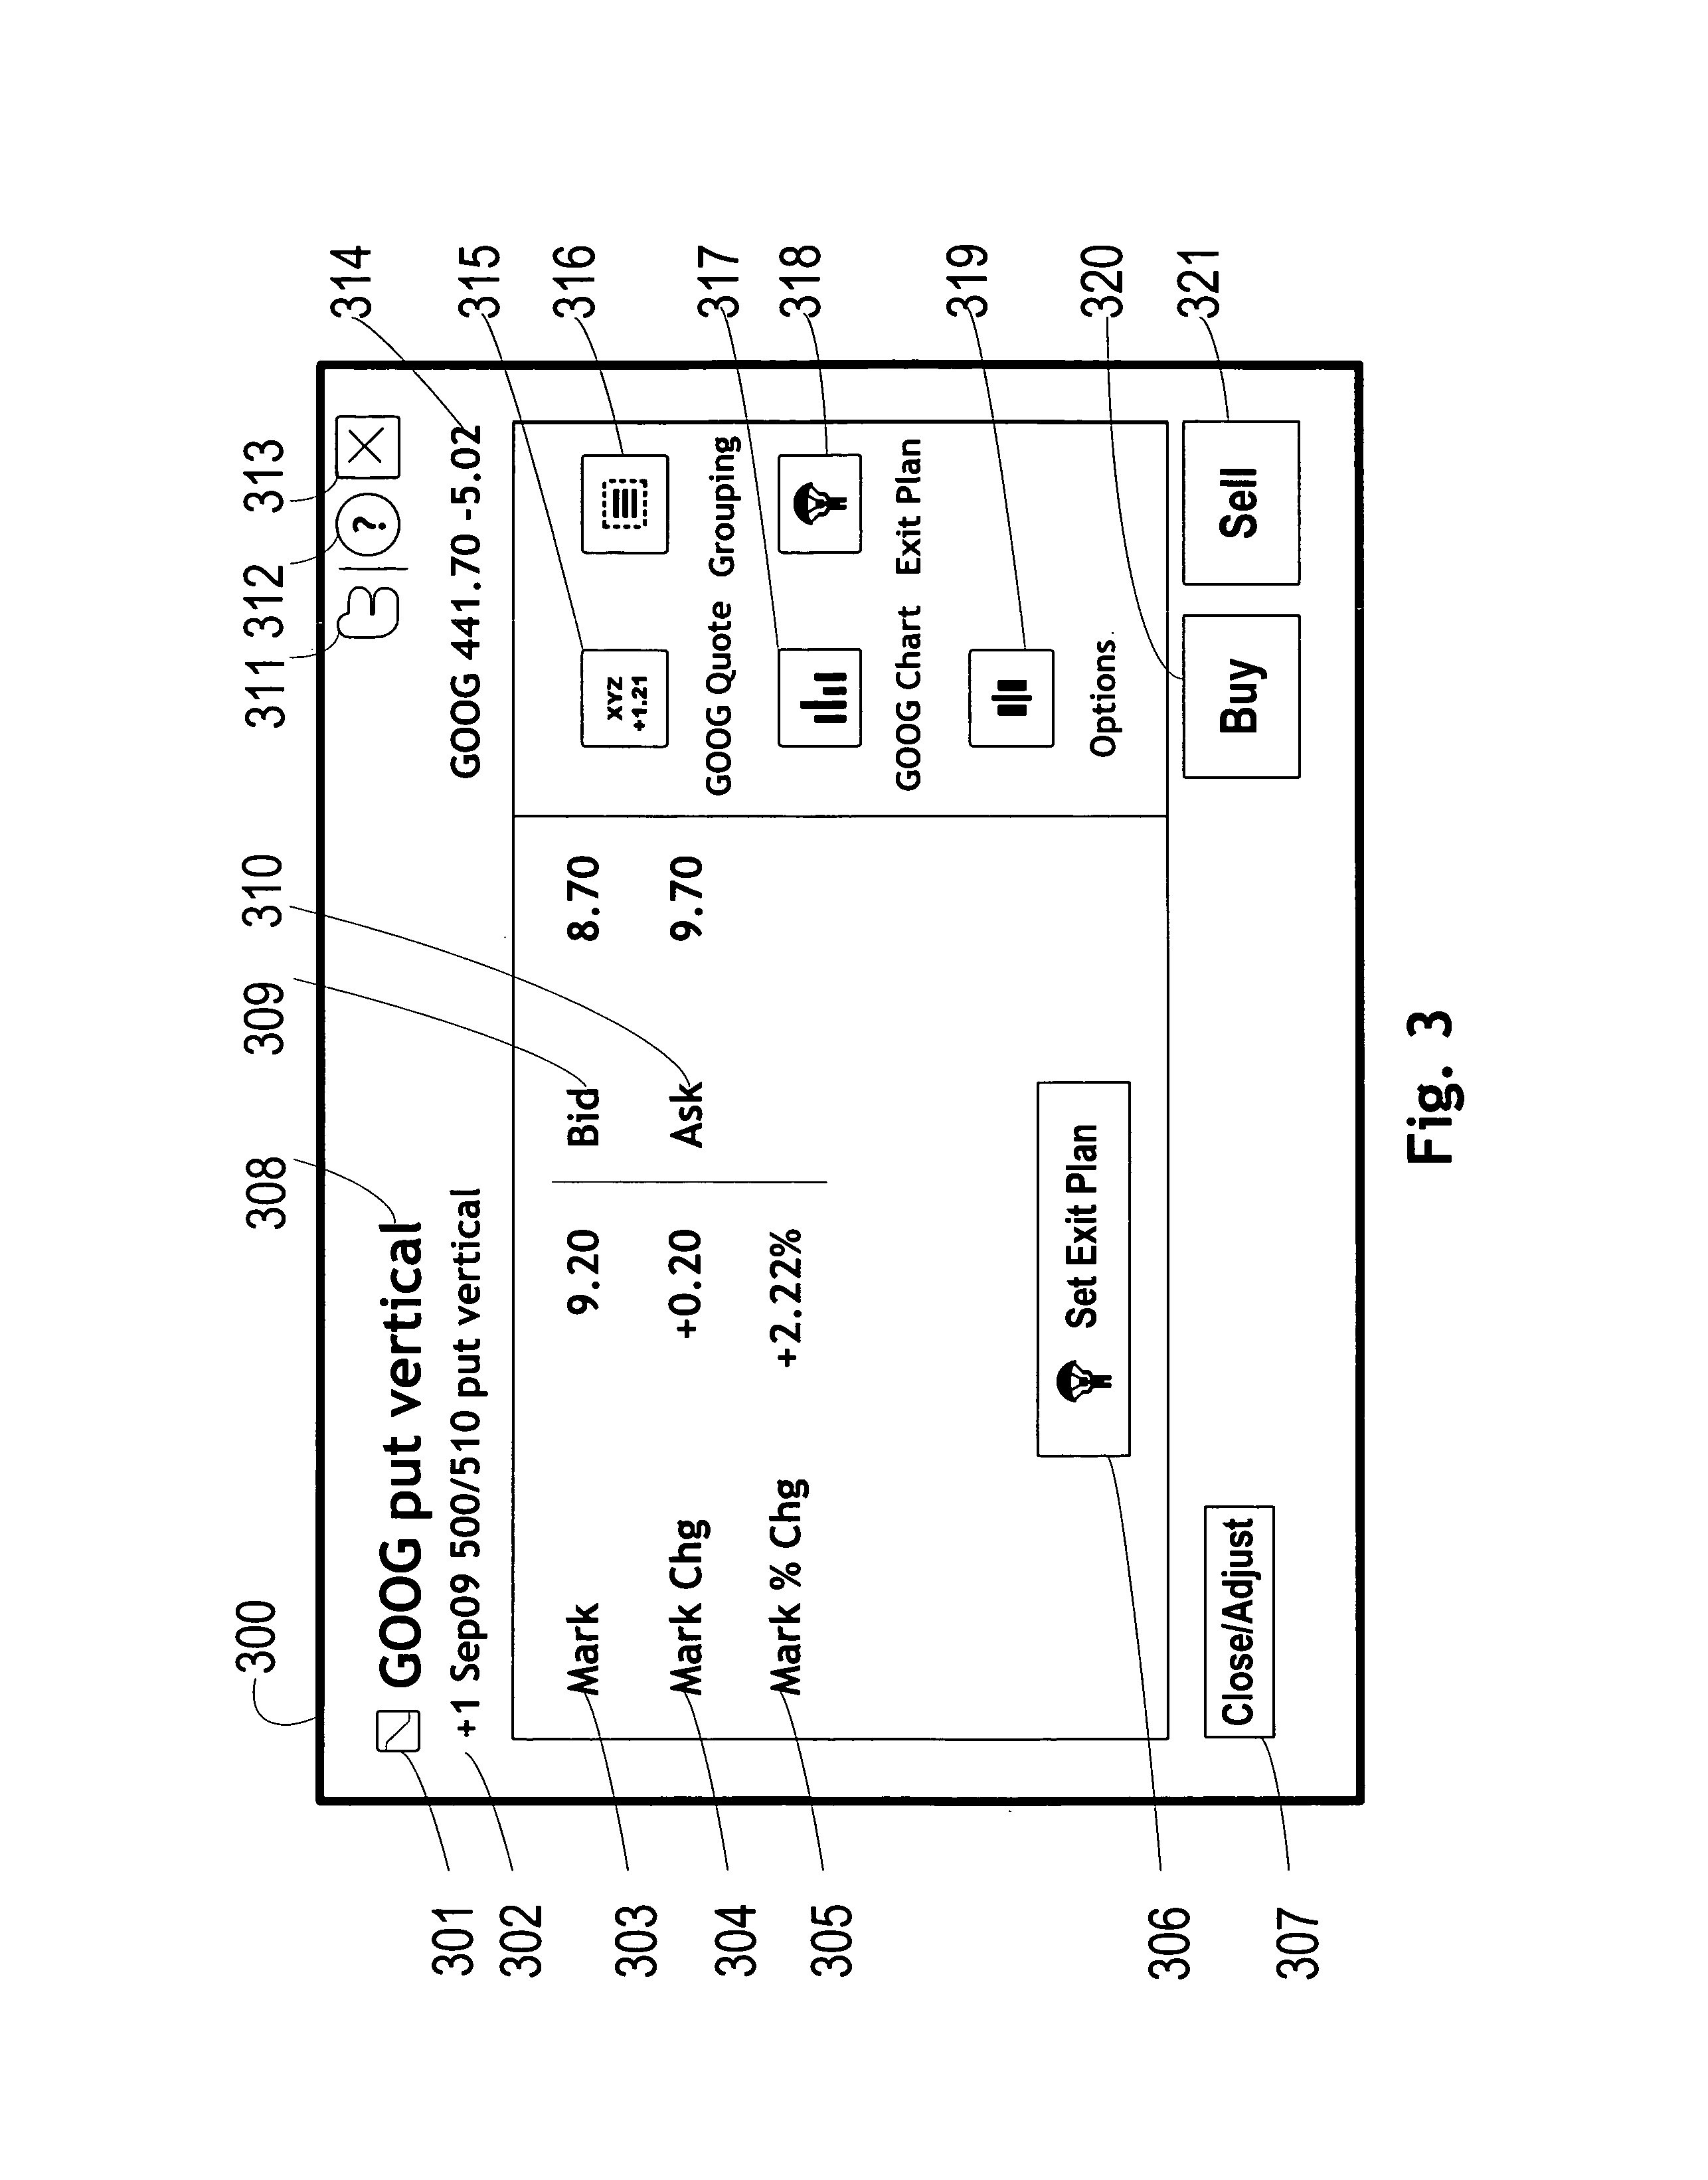 Patent a trading strategy